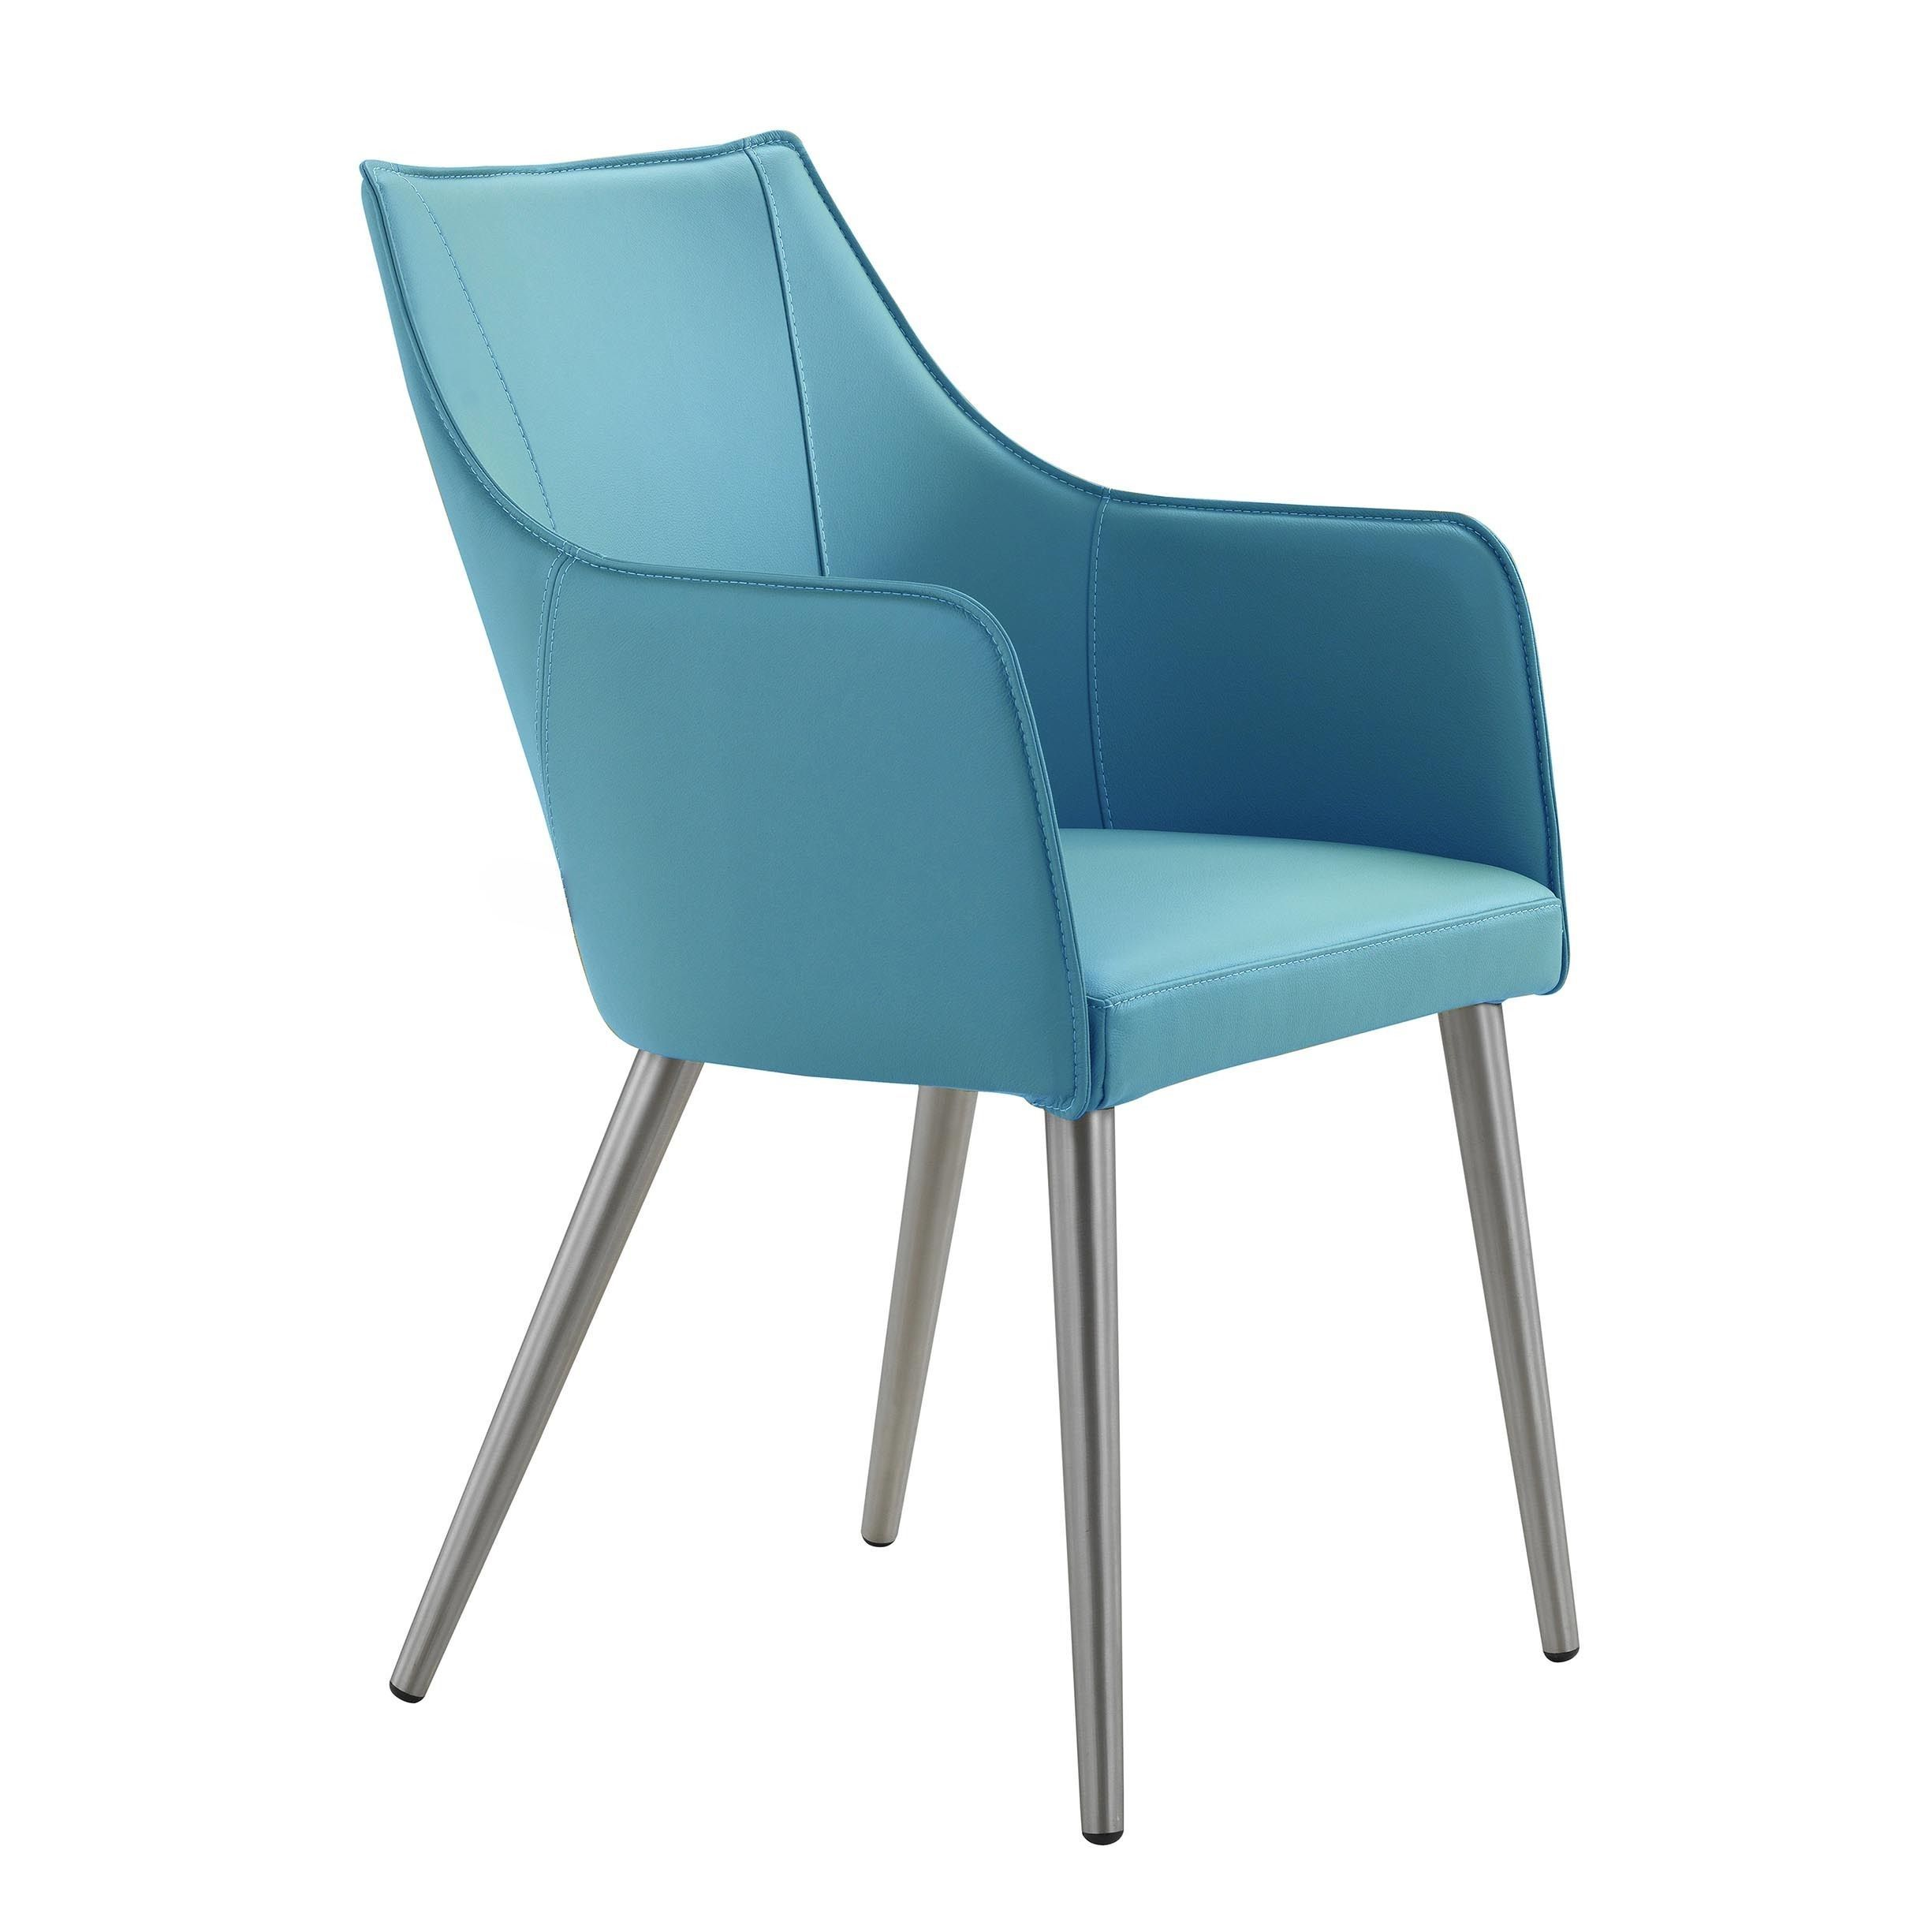 modern leather dining chairs with arms directors chair canvas replacement covers aurelle home blue stainless steel